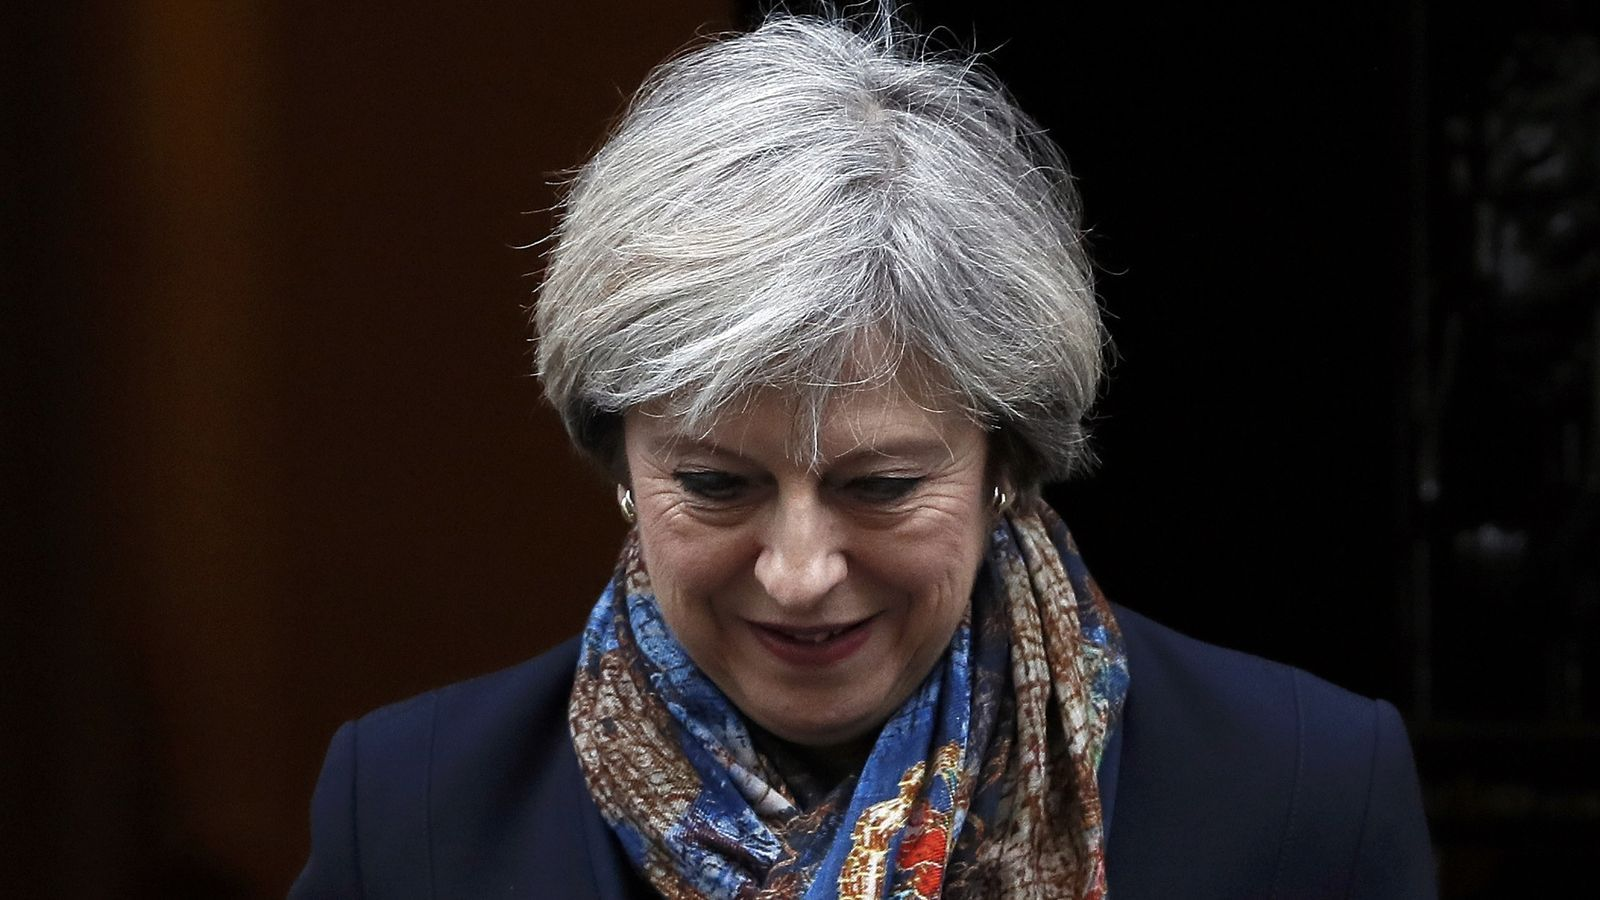 Theresa May sortint del número 10 de Downing Street.